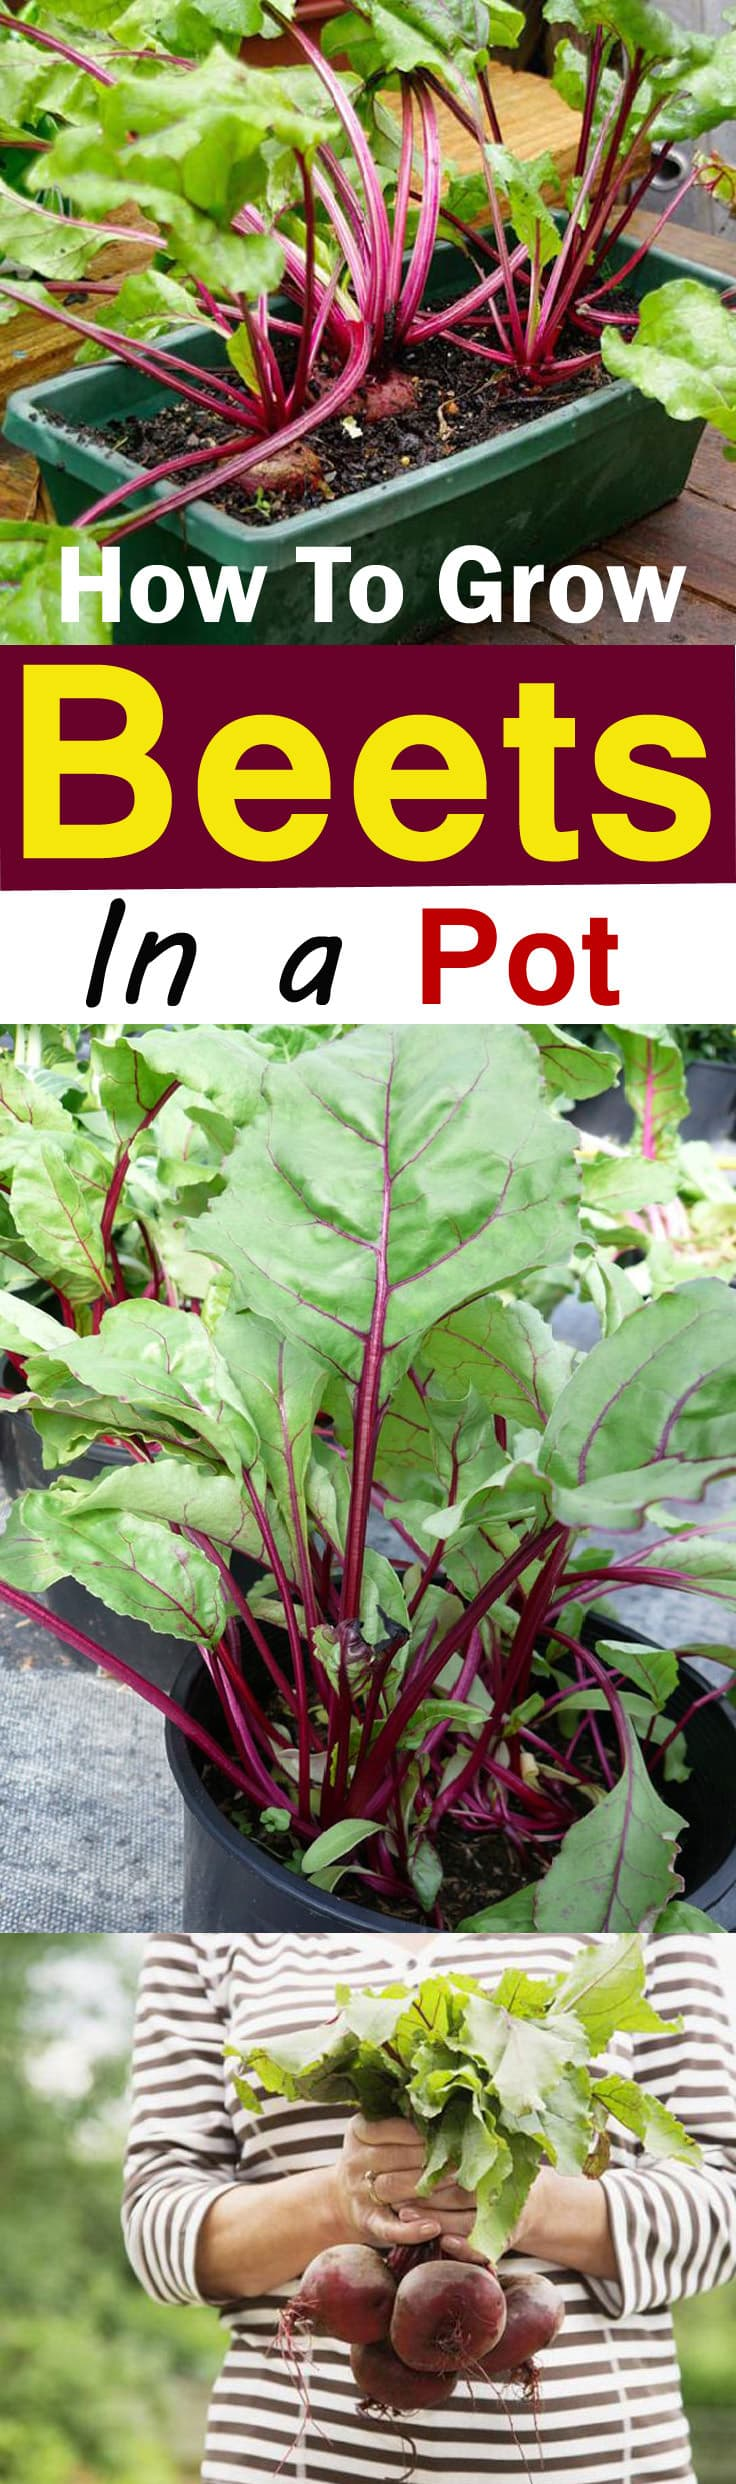 Growing Beets in Containers is easy  This quick growing vegetable doesn t  require much. Growing Beets in Containers  How to Grow Beets in Pots   Balcony